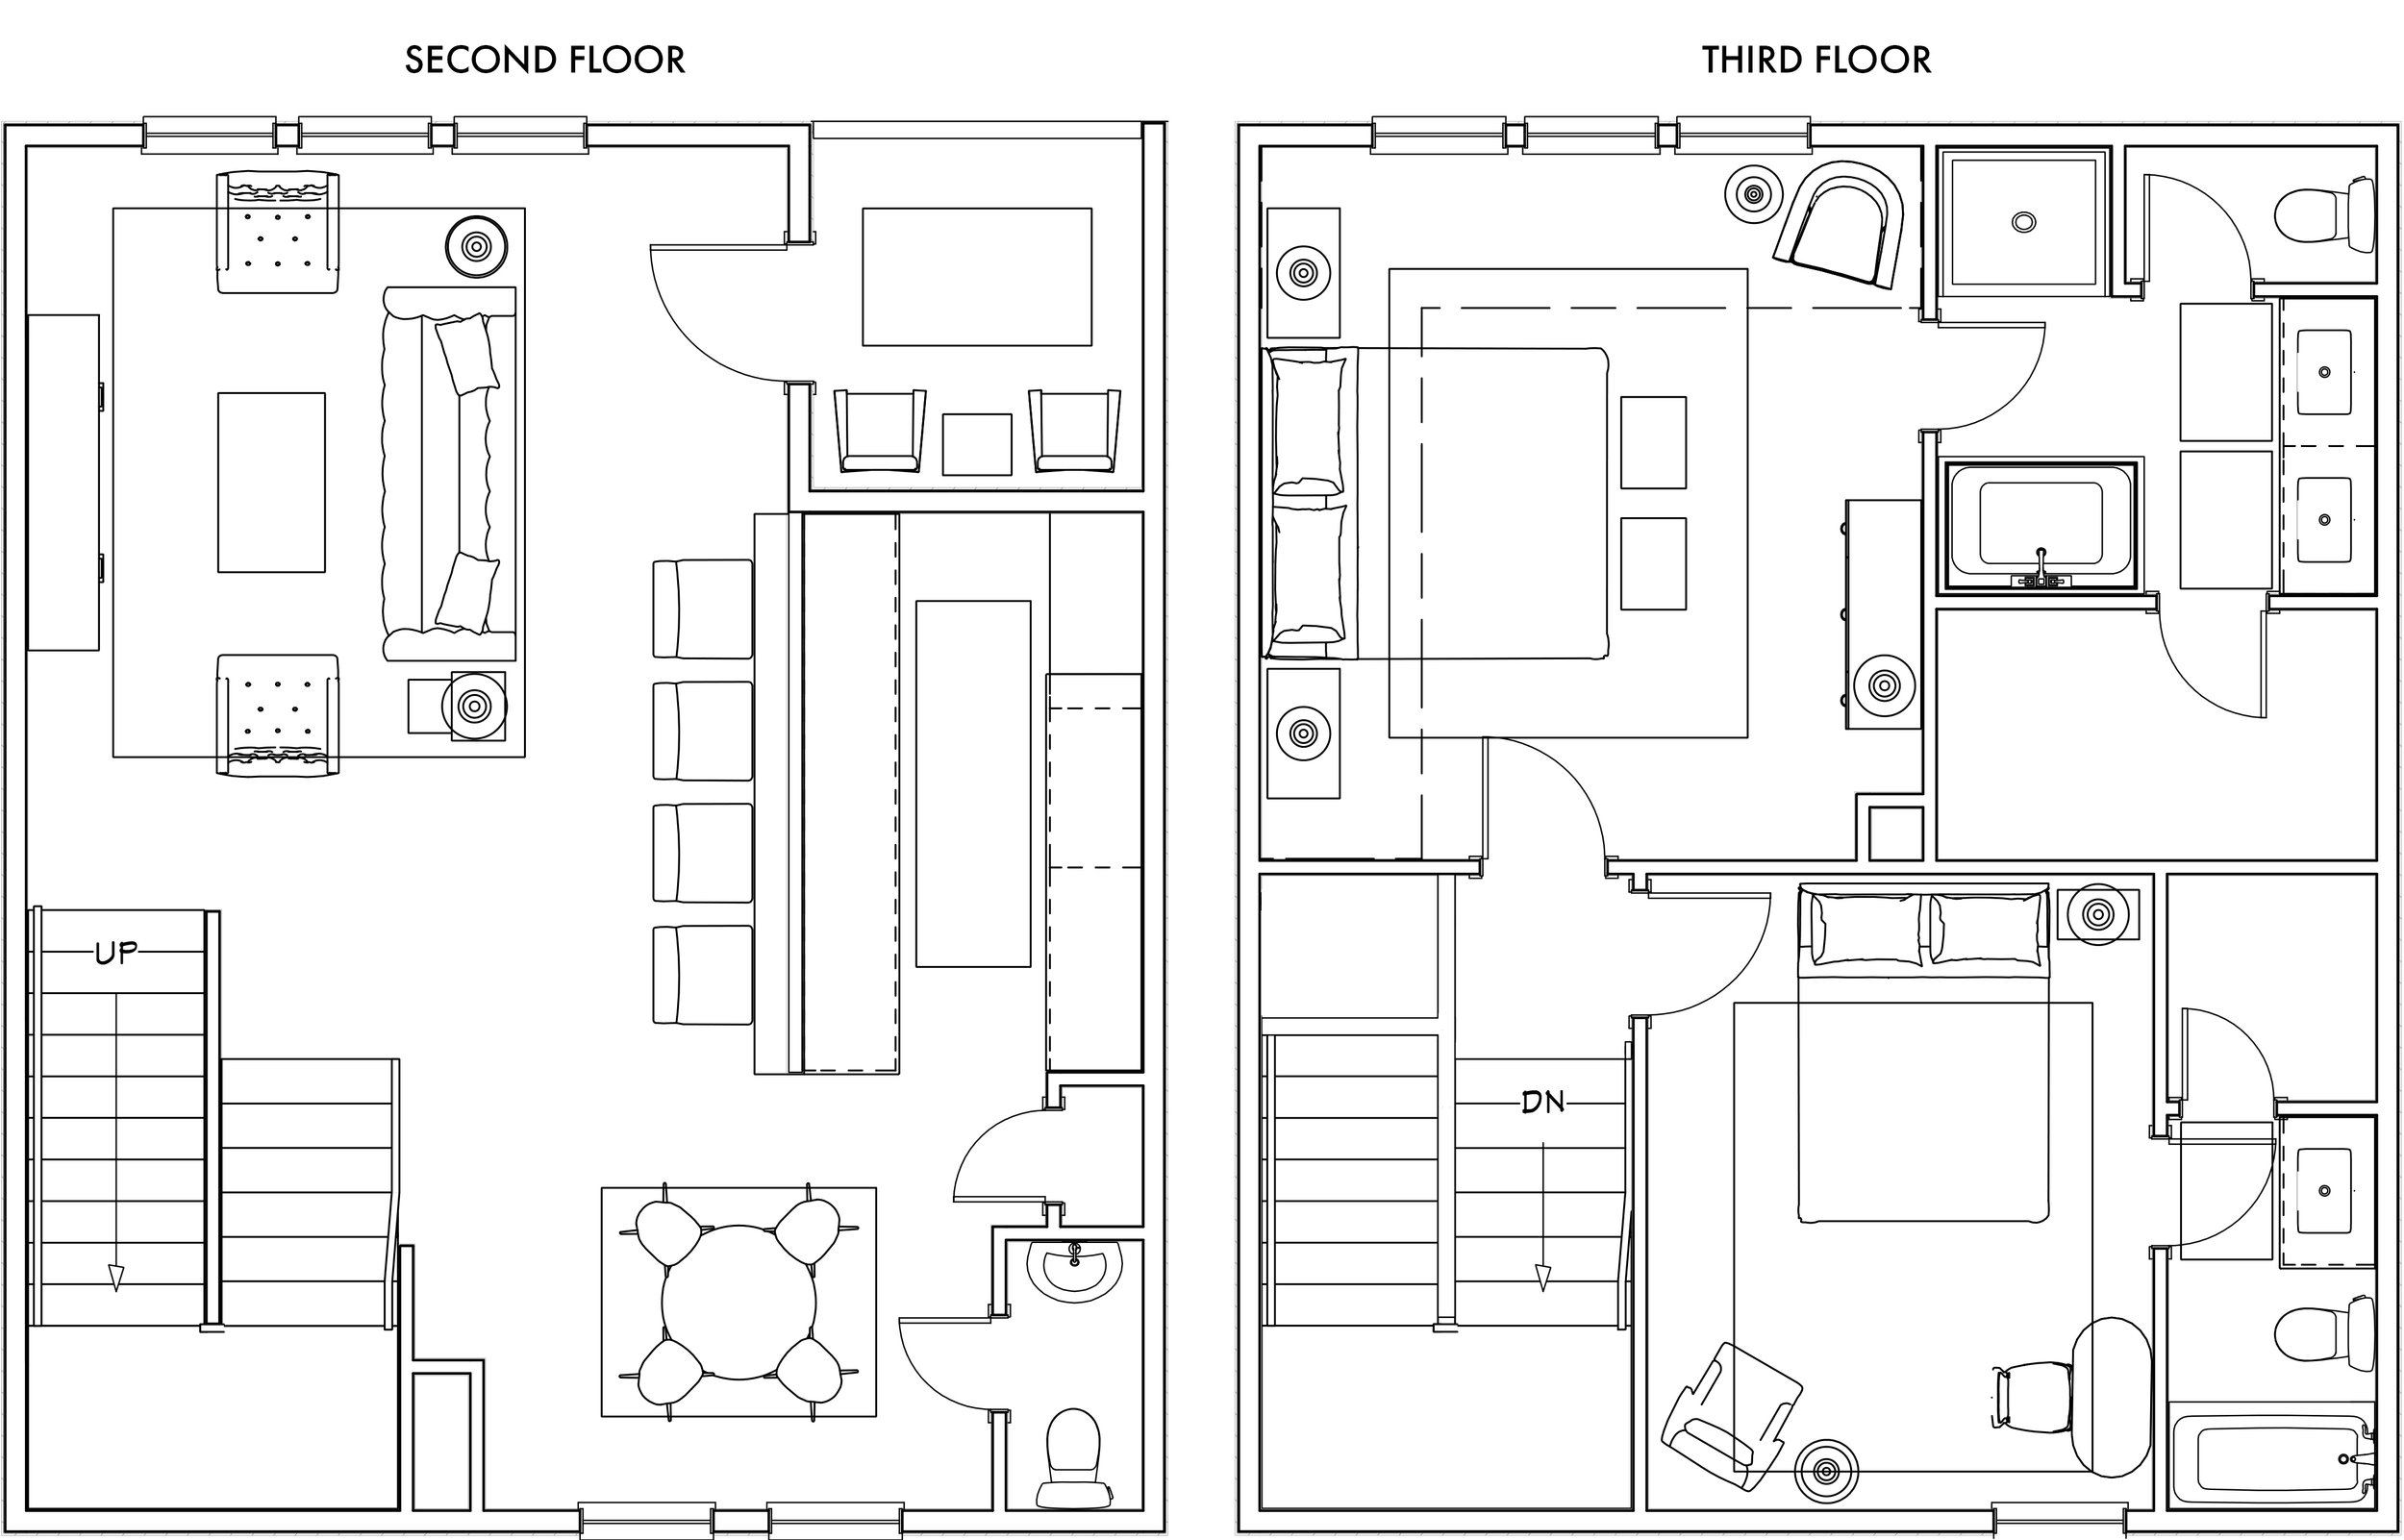 Shadrock - Dallas Condo Floor Plans.jpg